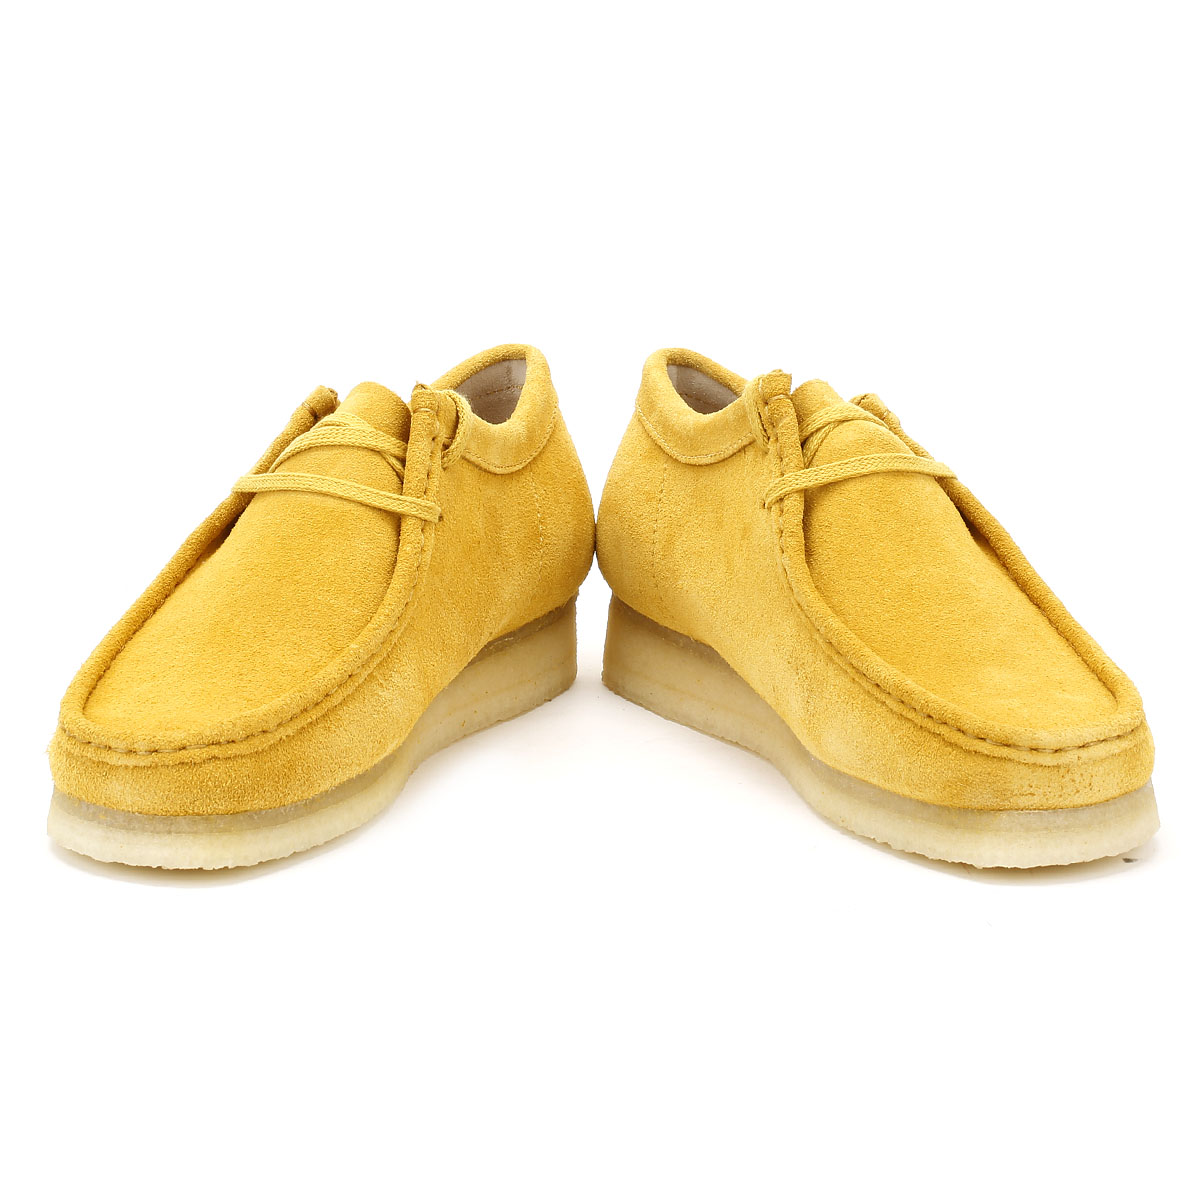 Yellow Suede Shoes Uk